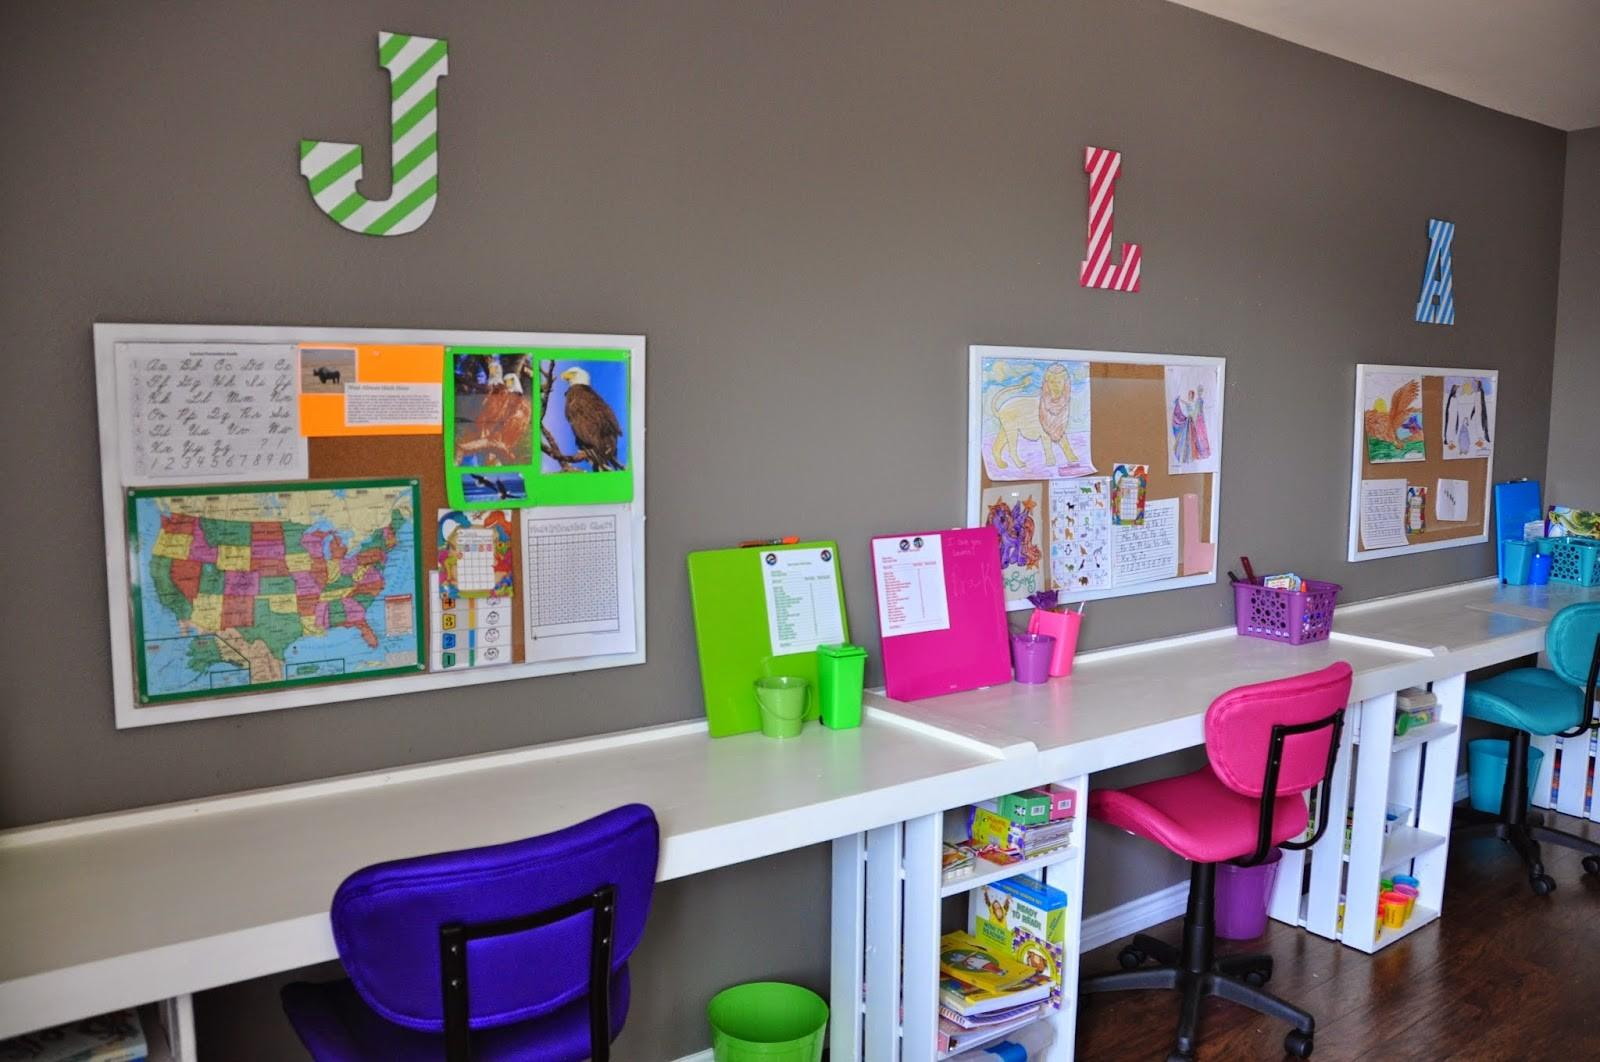 30 Exquisite Shared Study Spaces For Kids That Can Make Great Decor Accents Beautiful Decoratorist